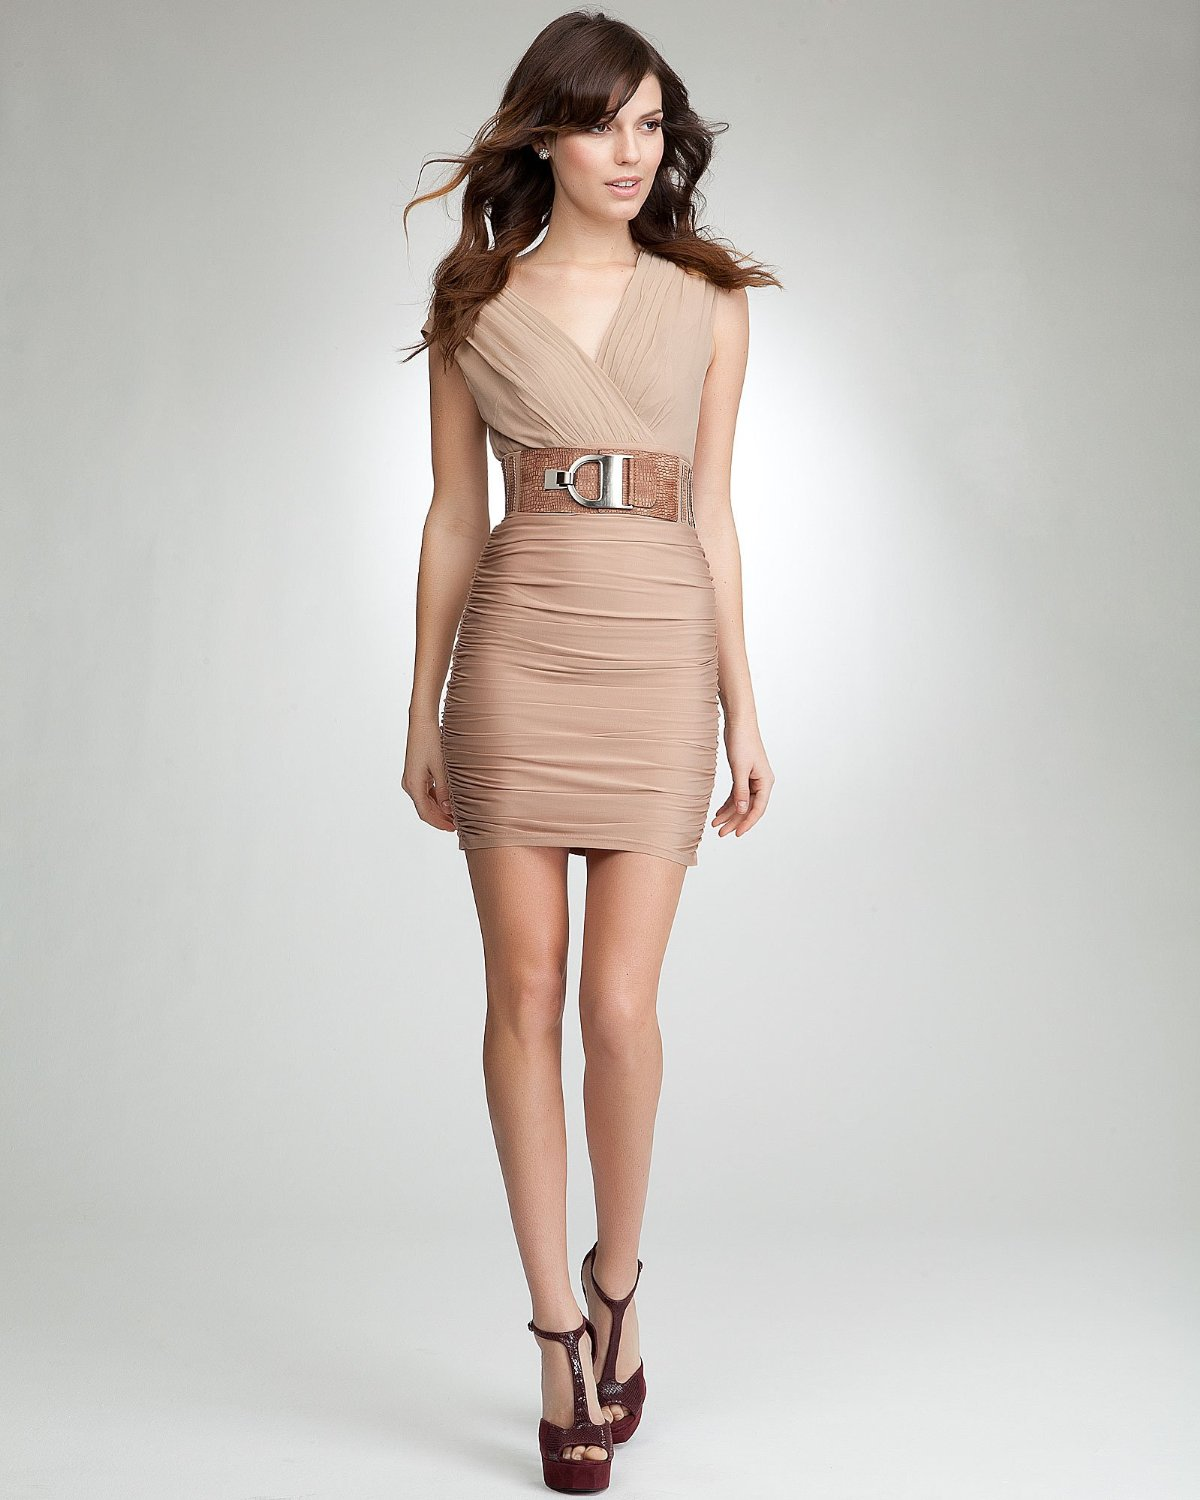 dress4cutelady color dress with chocolate brown